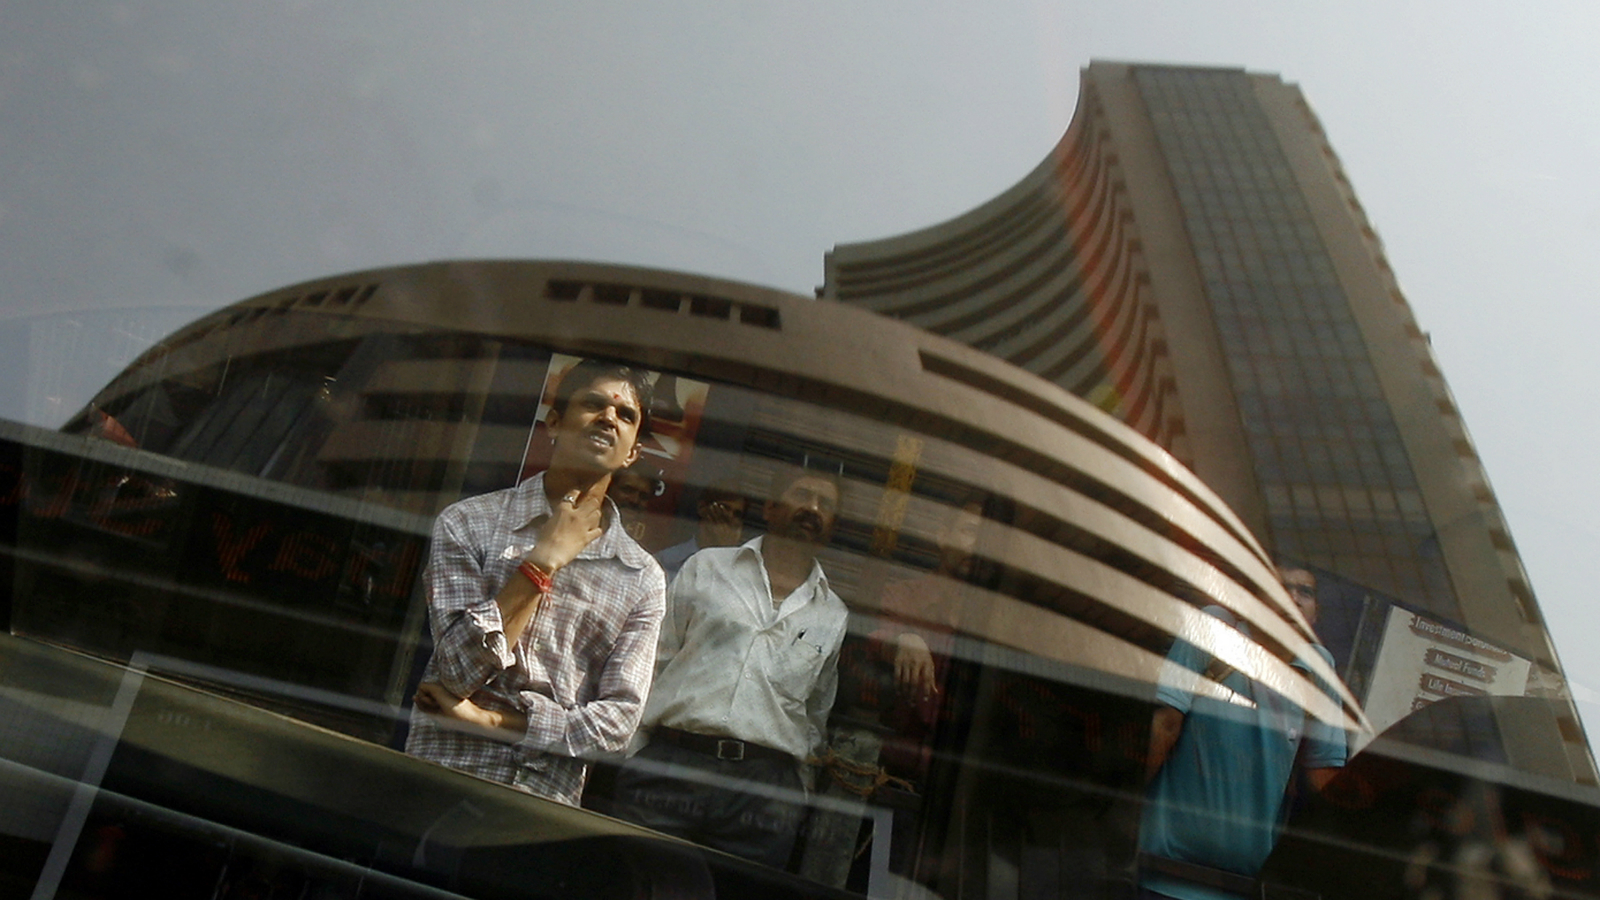 The Bombay Stock Exchange (BSE) building is reflected on a glass window as people look at a large screen displaying India's benchmark share index on the facade of the building in Mumbai November 10, 2008. REUTERS/Arko Datta (INDIA)